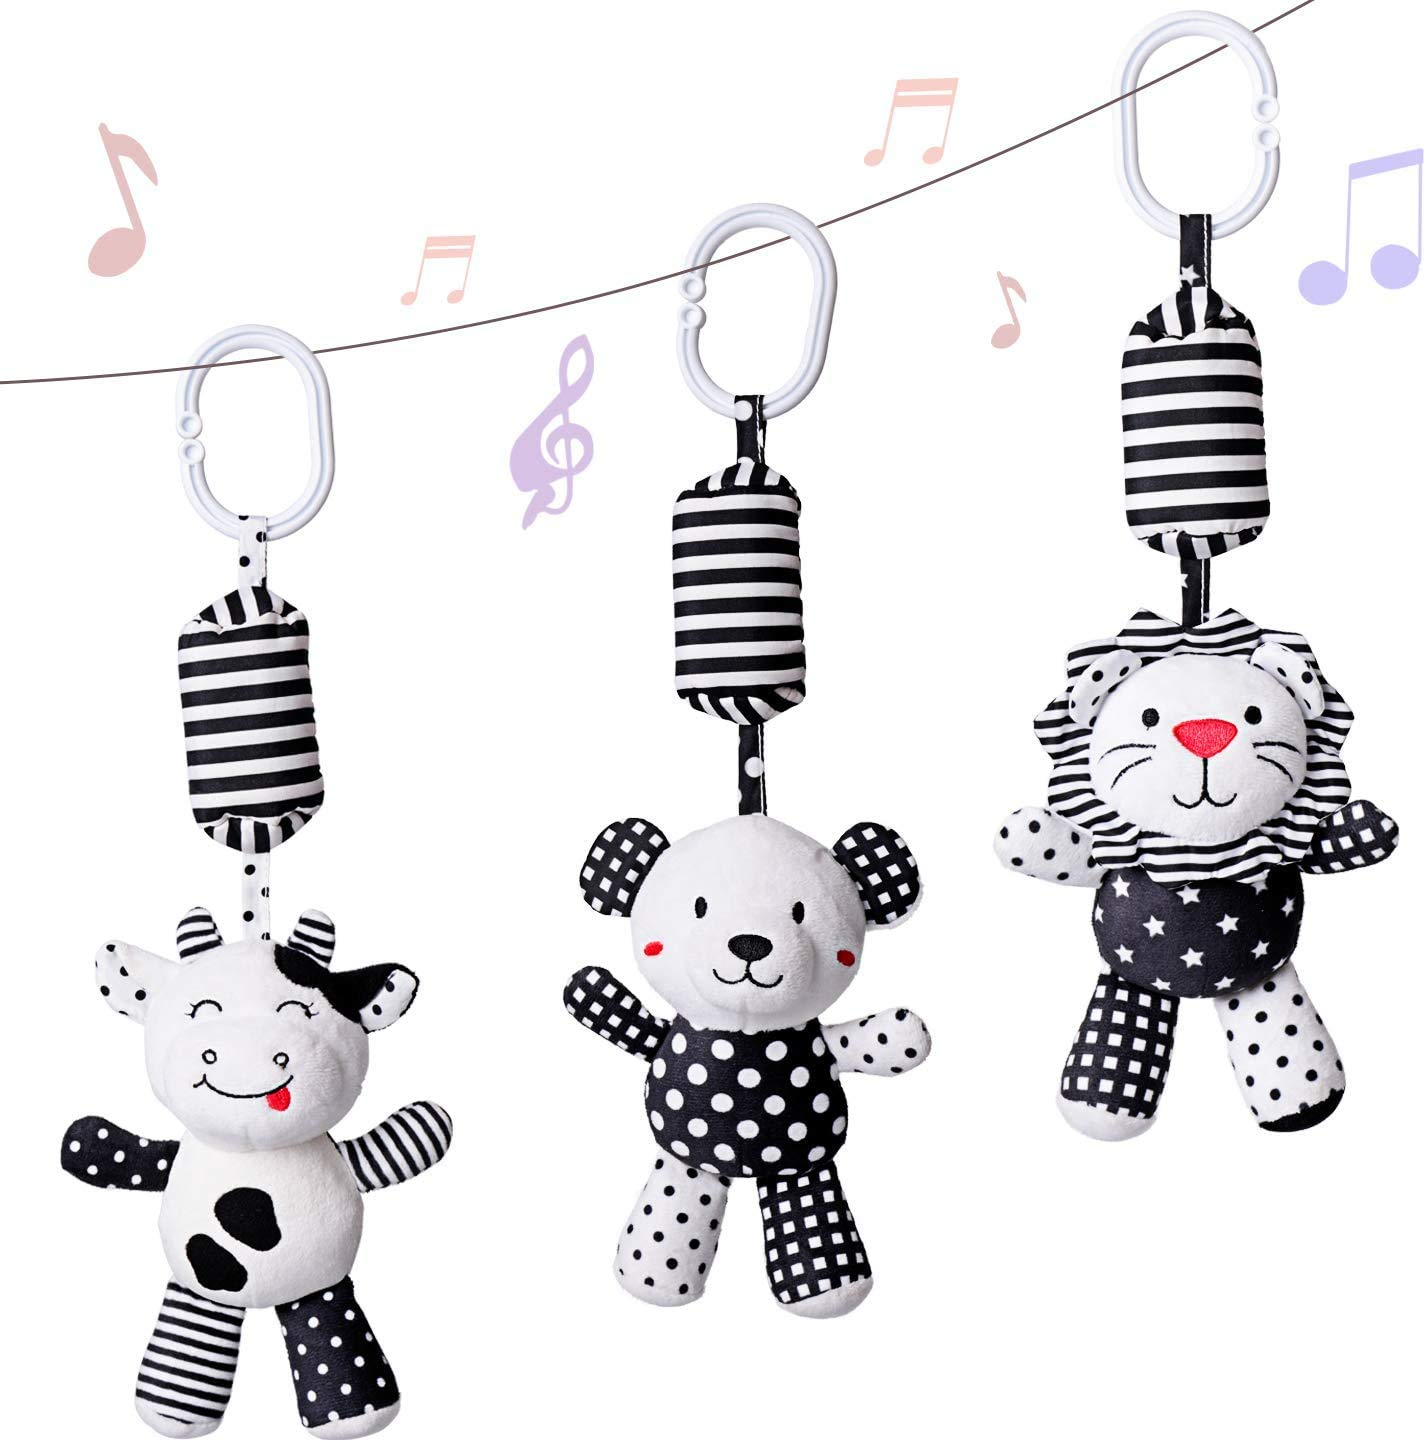 rolimate Baby Toy Cartoon Animal Stuffed Hanging Rattle Toys, Baby Bed Crib Car Seat Travel Stroller Soft Plush Toys with Wind Chimes, Best Birthday Gift for Newborn 0-18 Month (Lion, Cow & Panda)